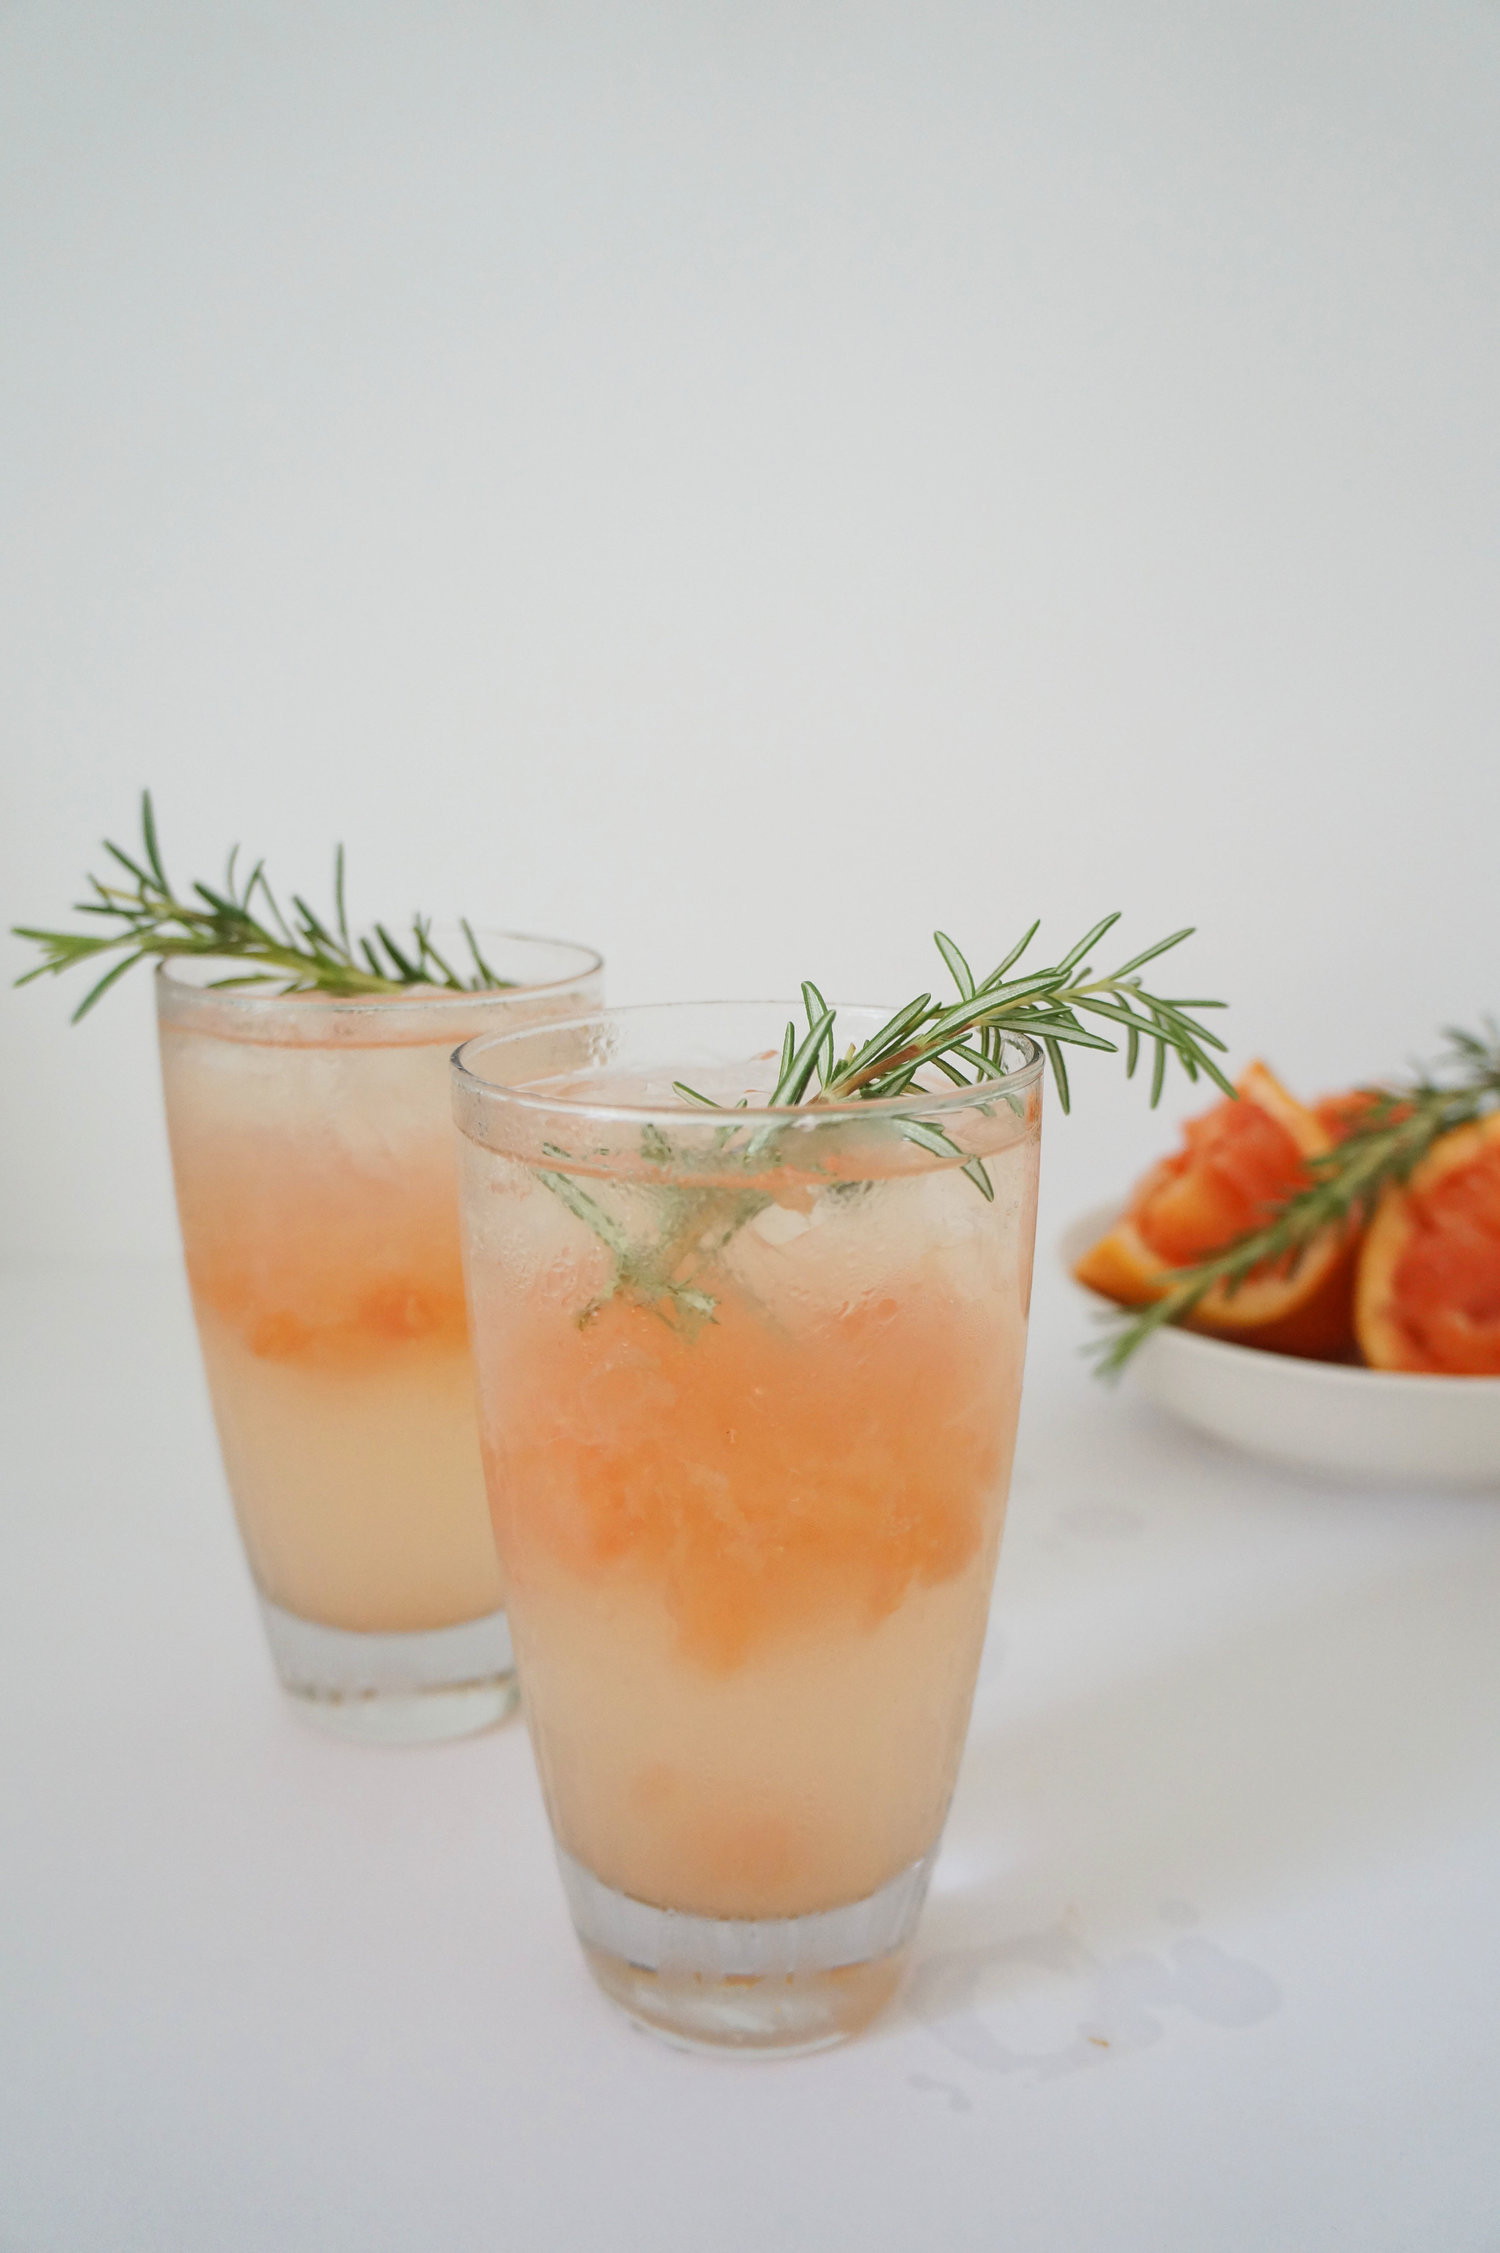 Andrea Fenise Memphis Fashion Blogger shares Rosemary and Grapefruit Cocktail